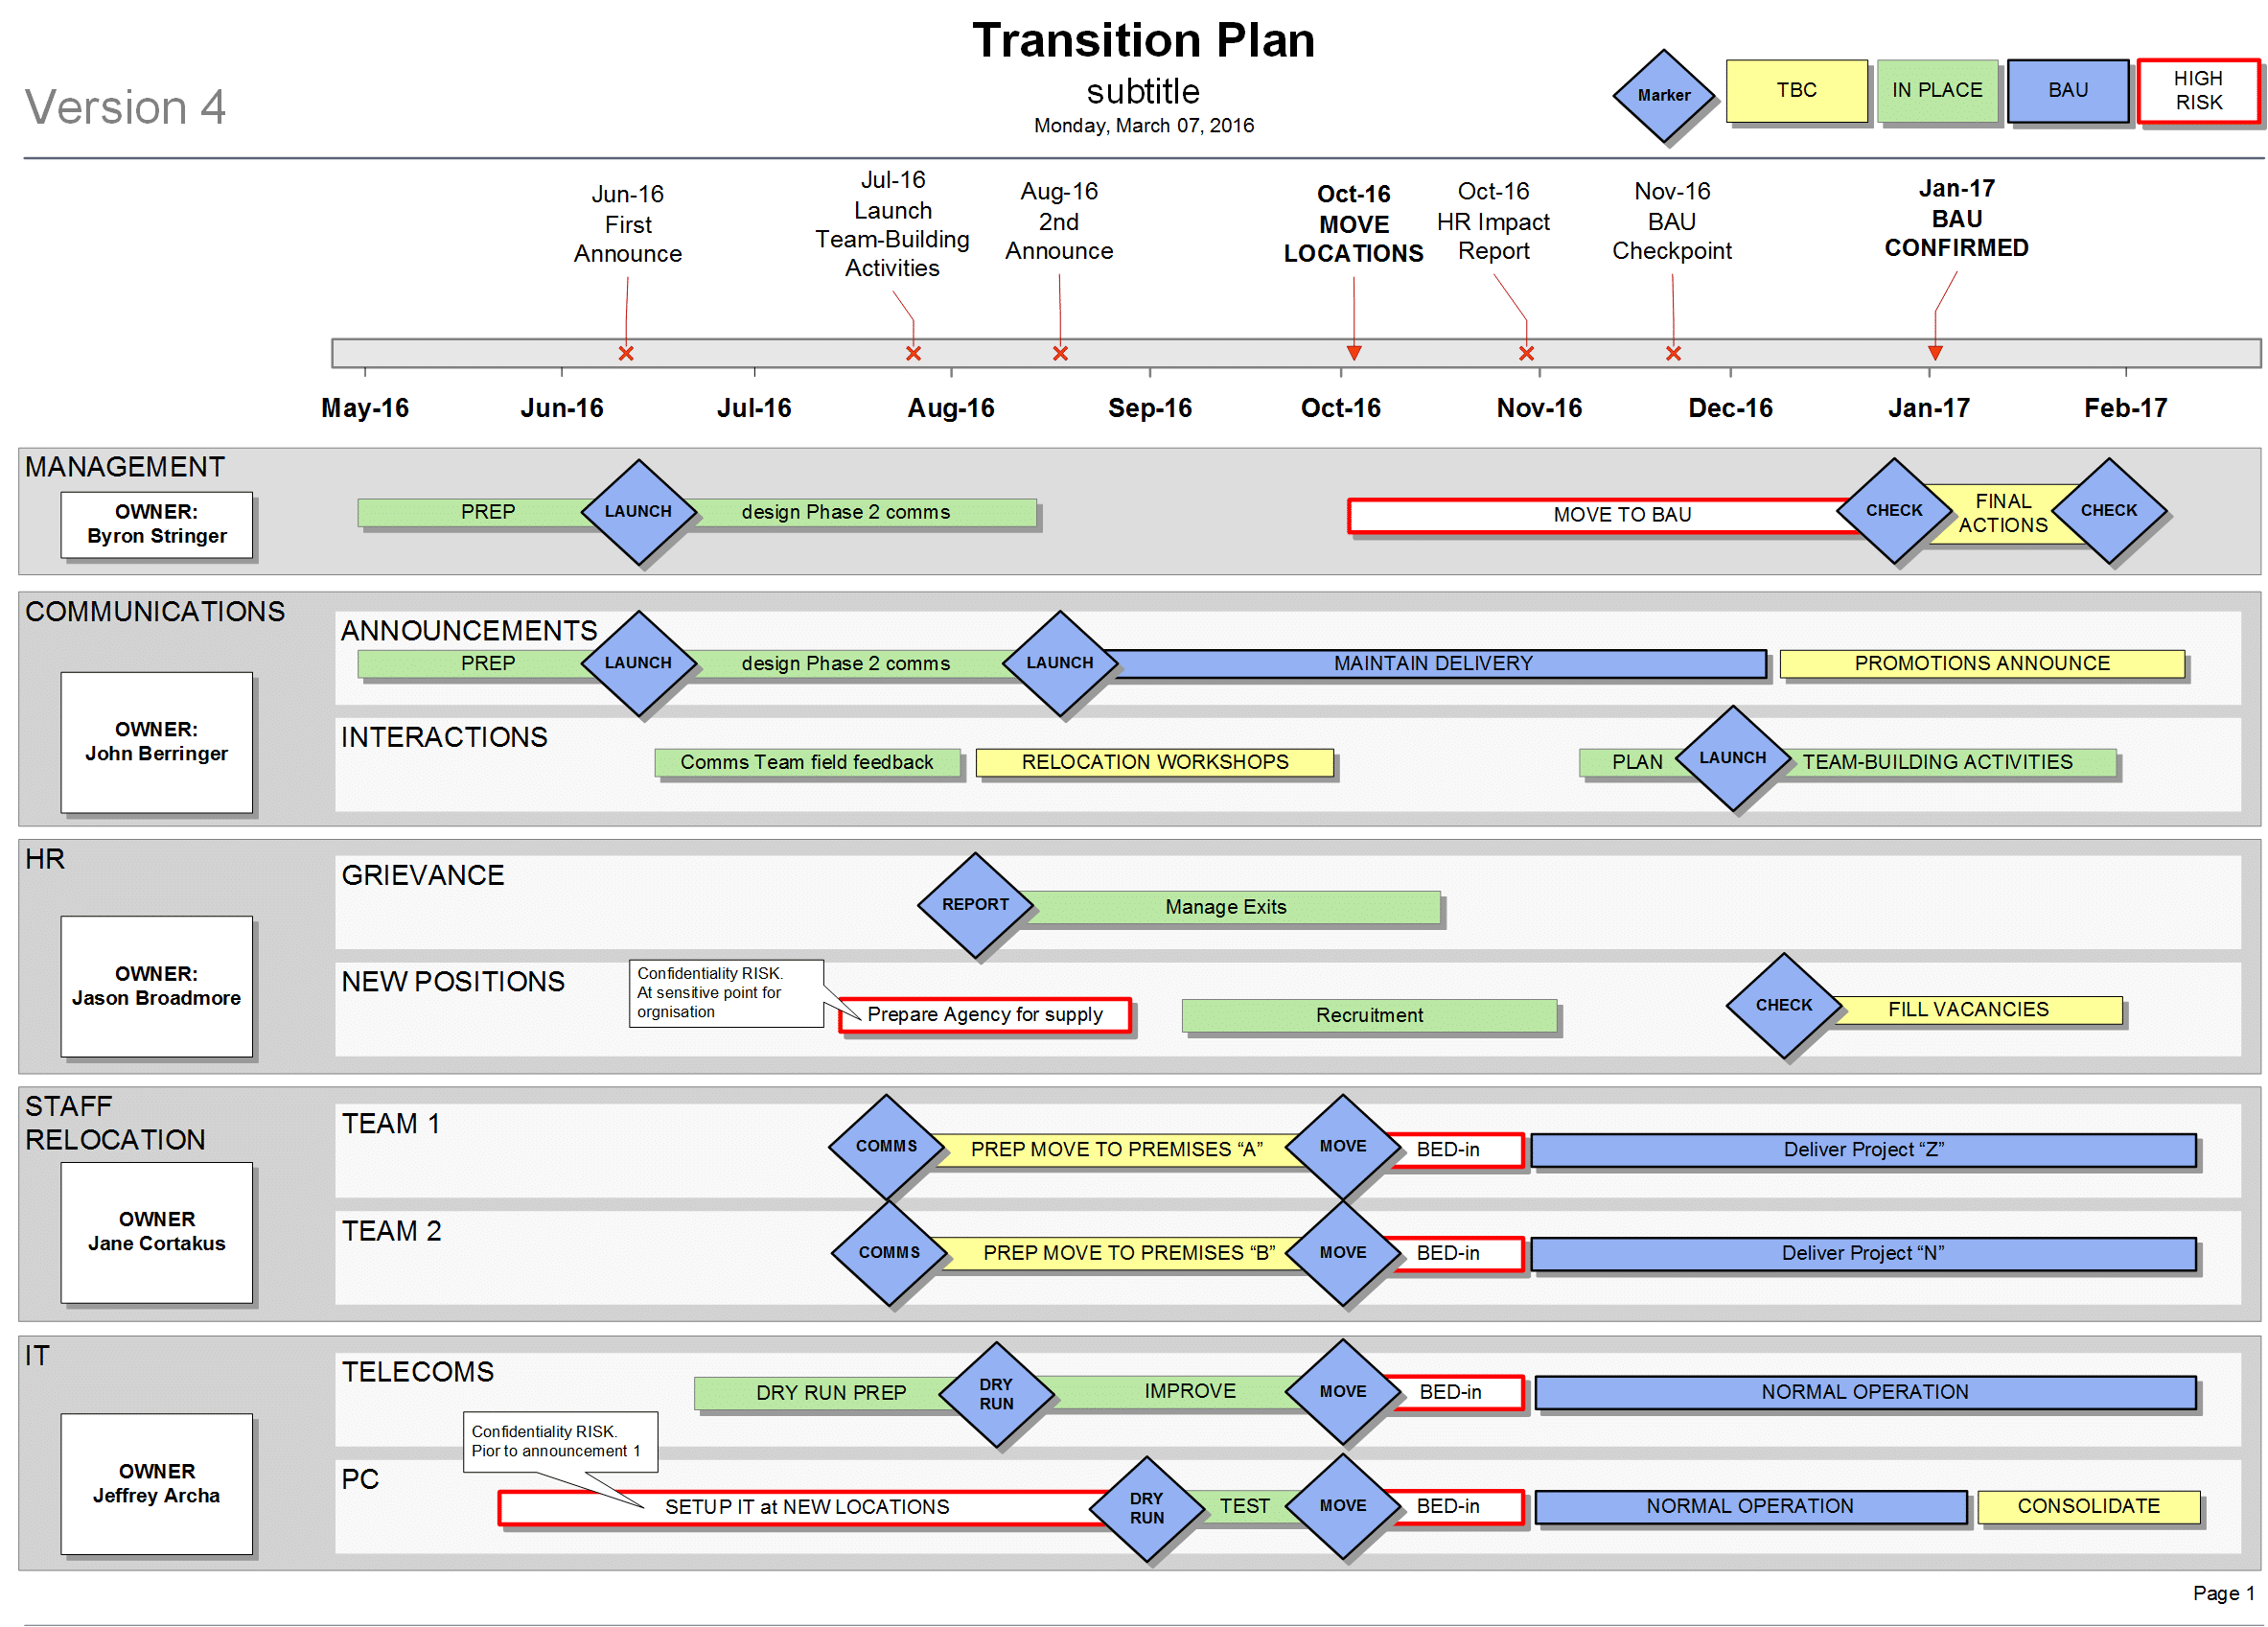 Visio Transition Plan Template - manage your cultural change